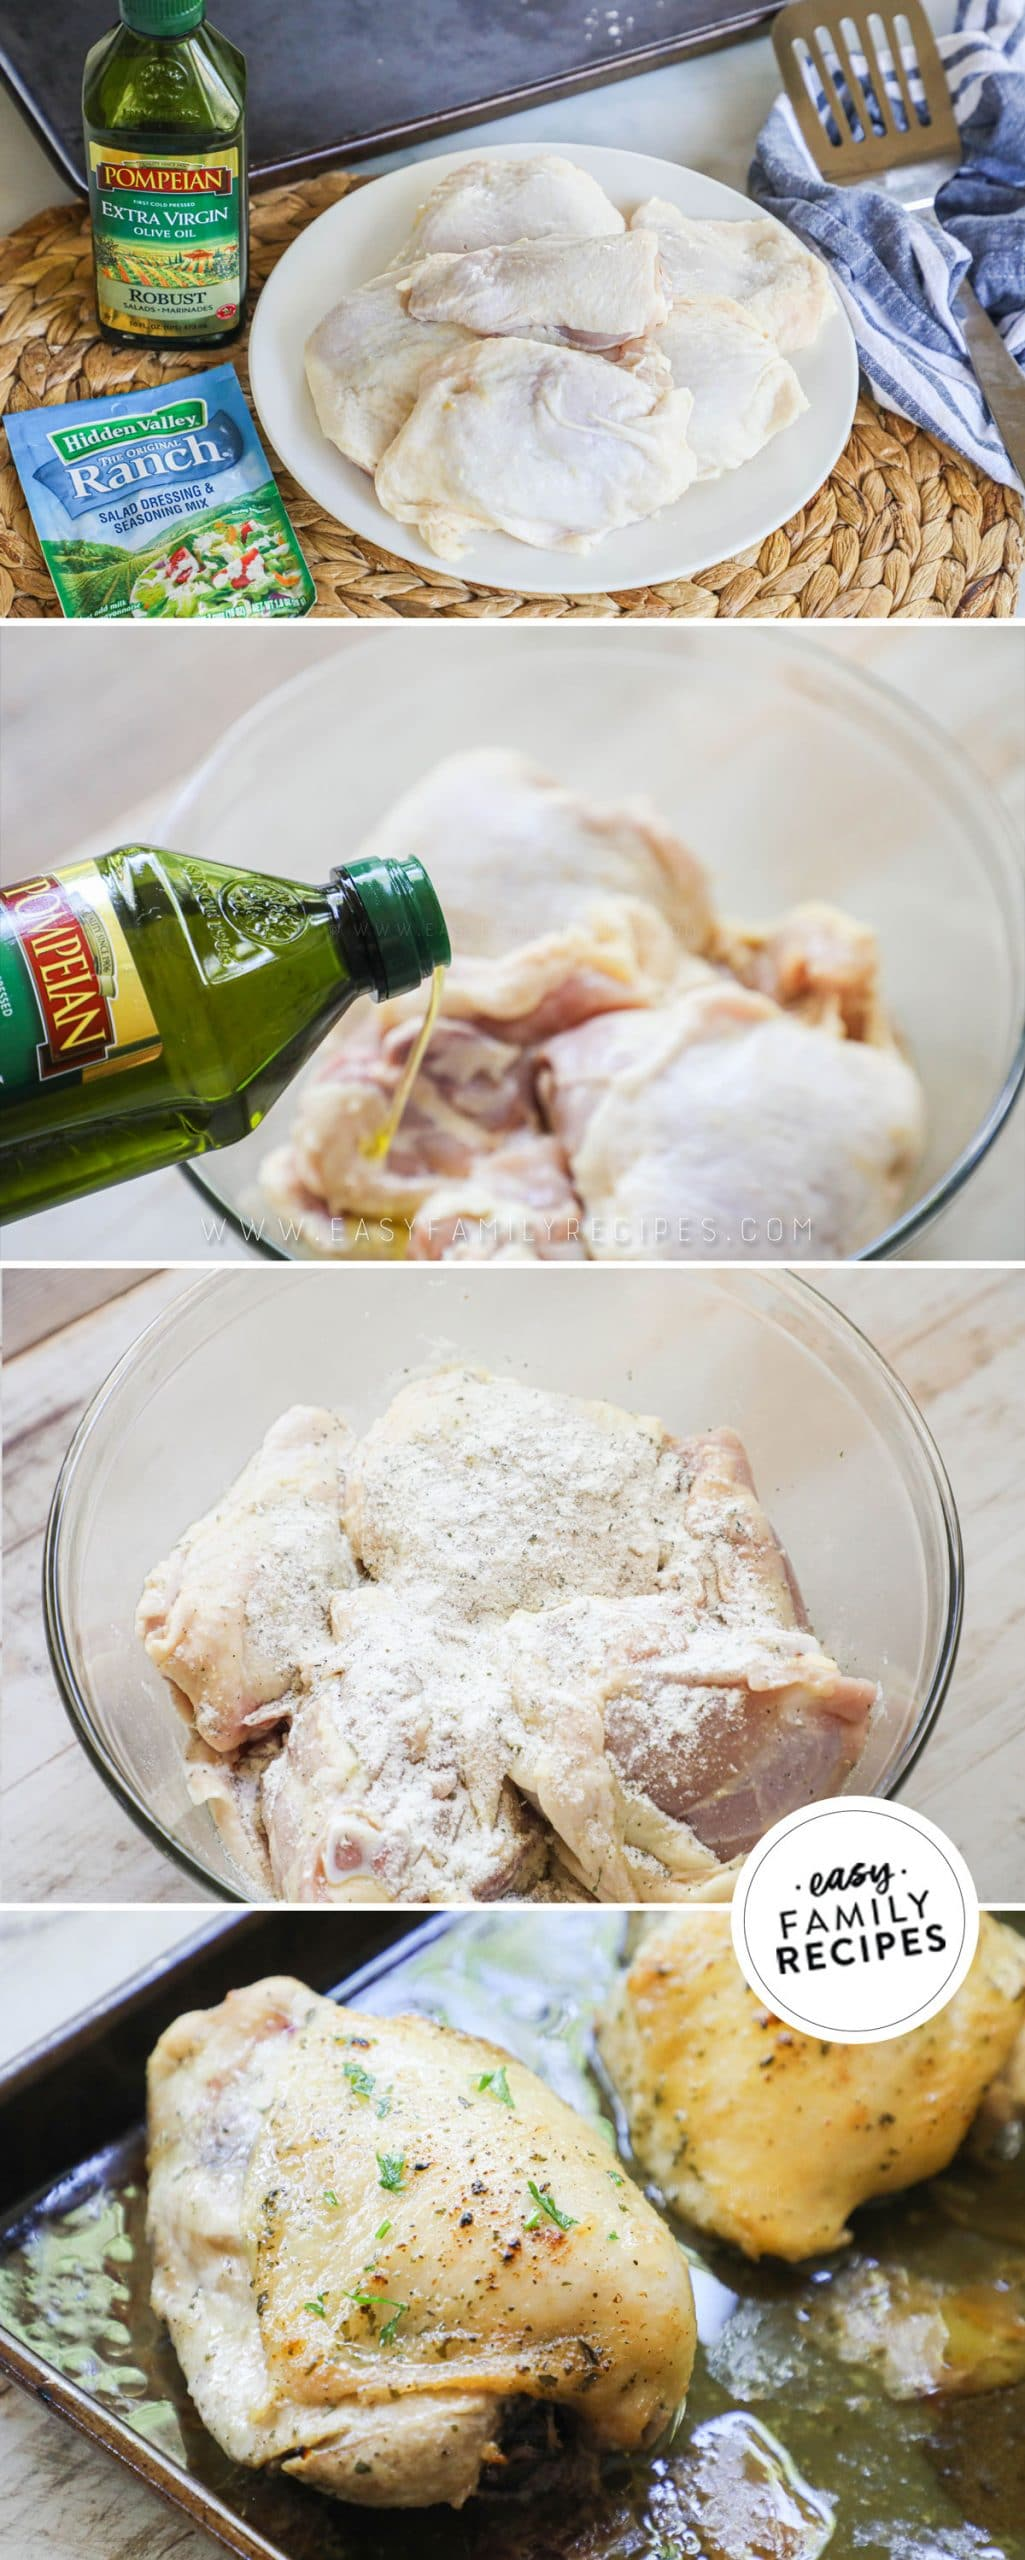 Process photos for how to make ranch baked chicken thighs. 1. Place bone in chicken thighs in a bowl. 2. Add olive oil. 3. add hidden valley ranch seasoning mix and toss. 4. Arrange on a baking sheet and roast in the oven until crispy and cooked through.